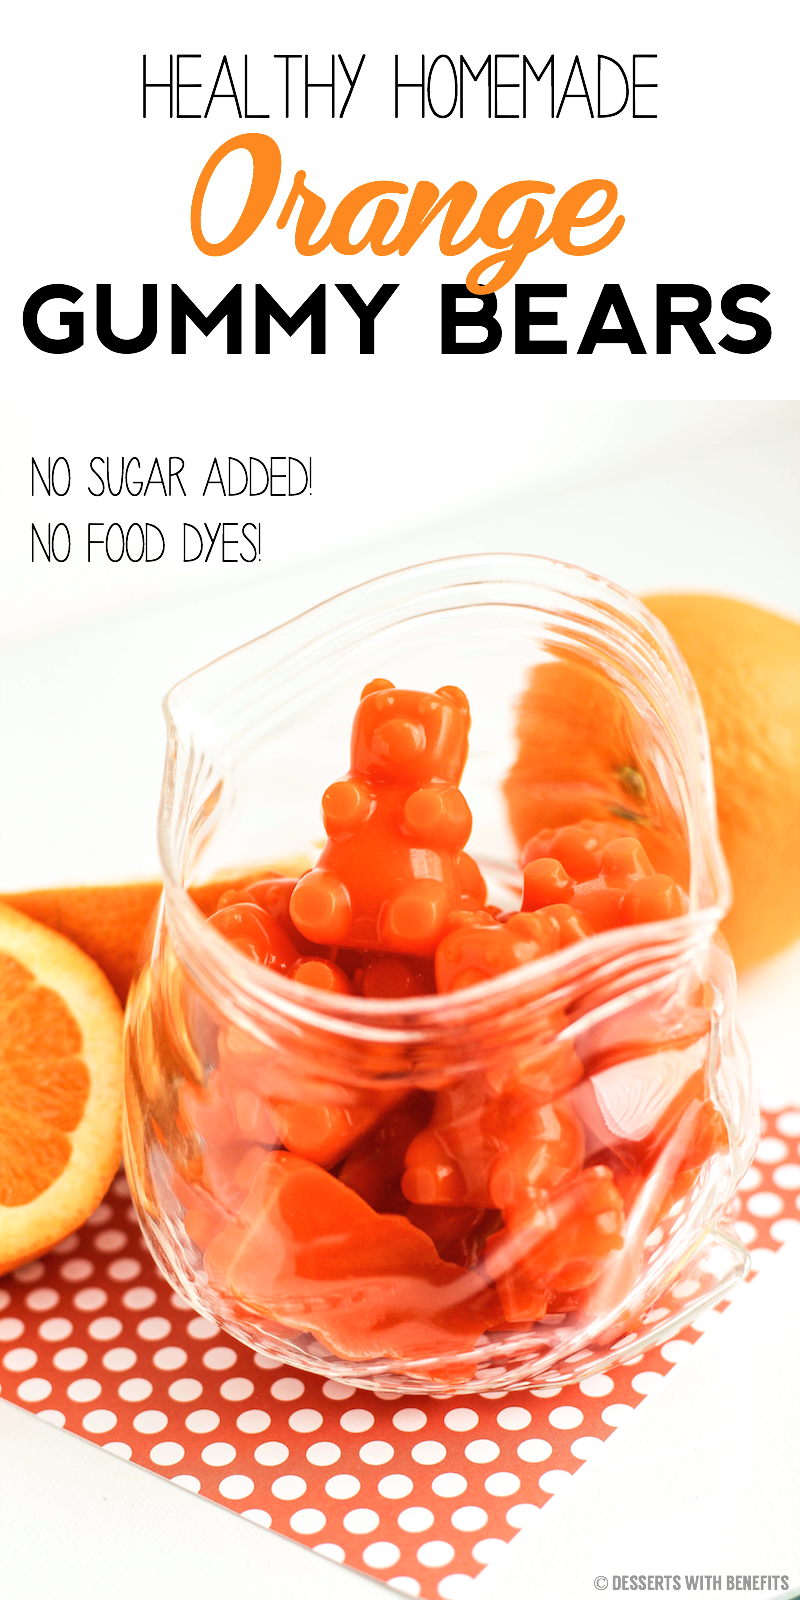 What is an easy recipe for Gummy Bears?